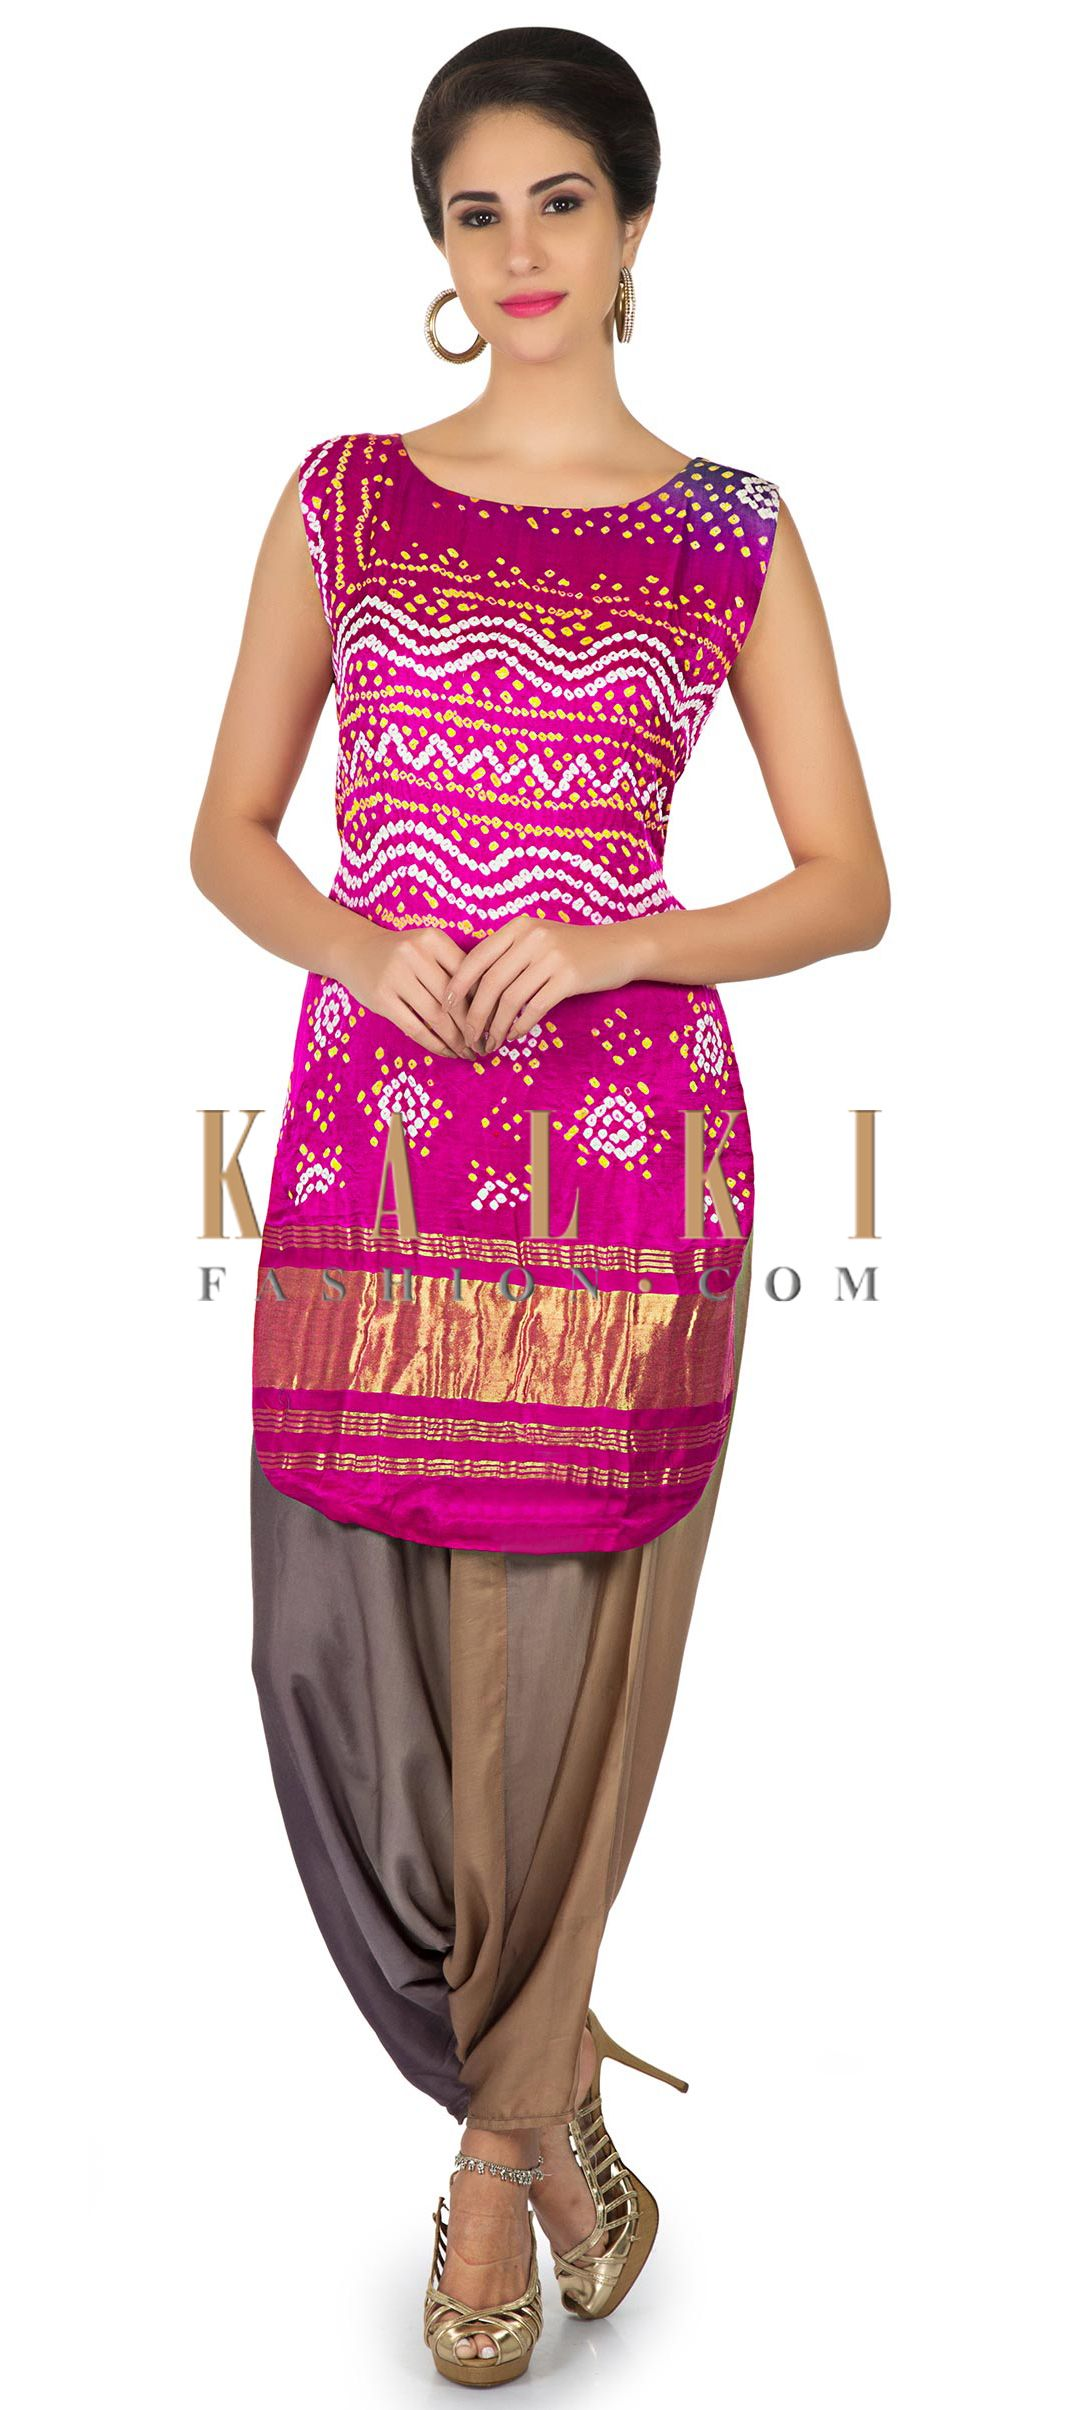 Purple pink satin top in bandhani print matched with Aladdin pants ...